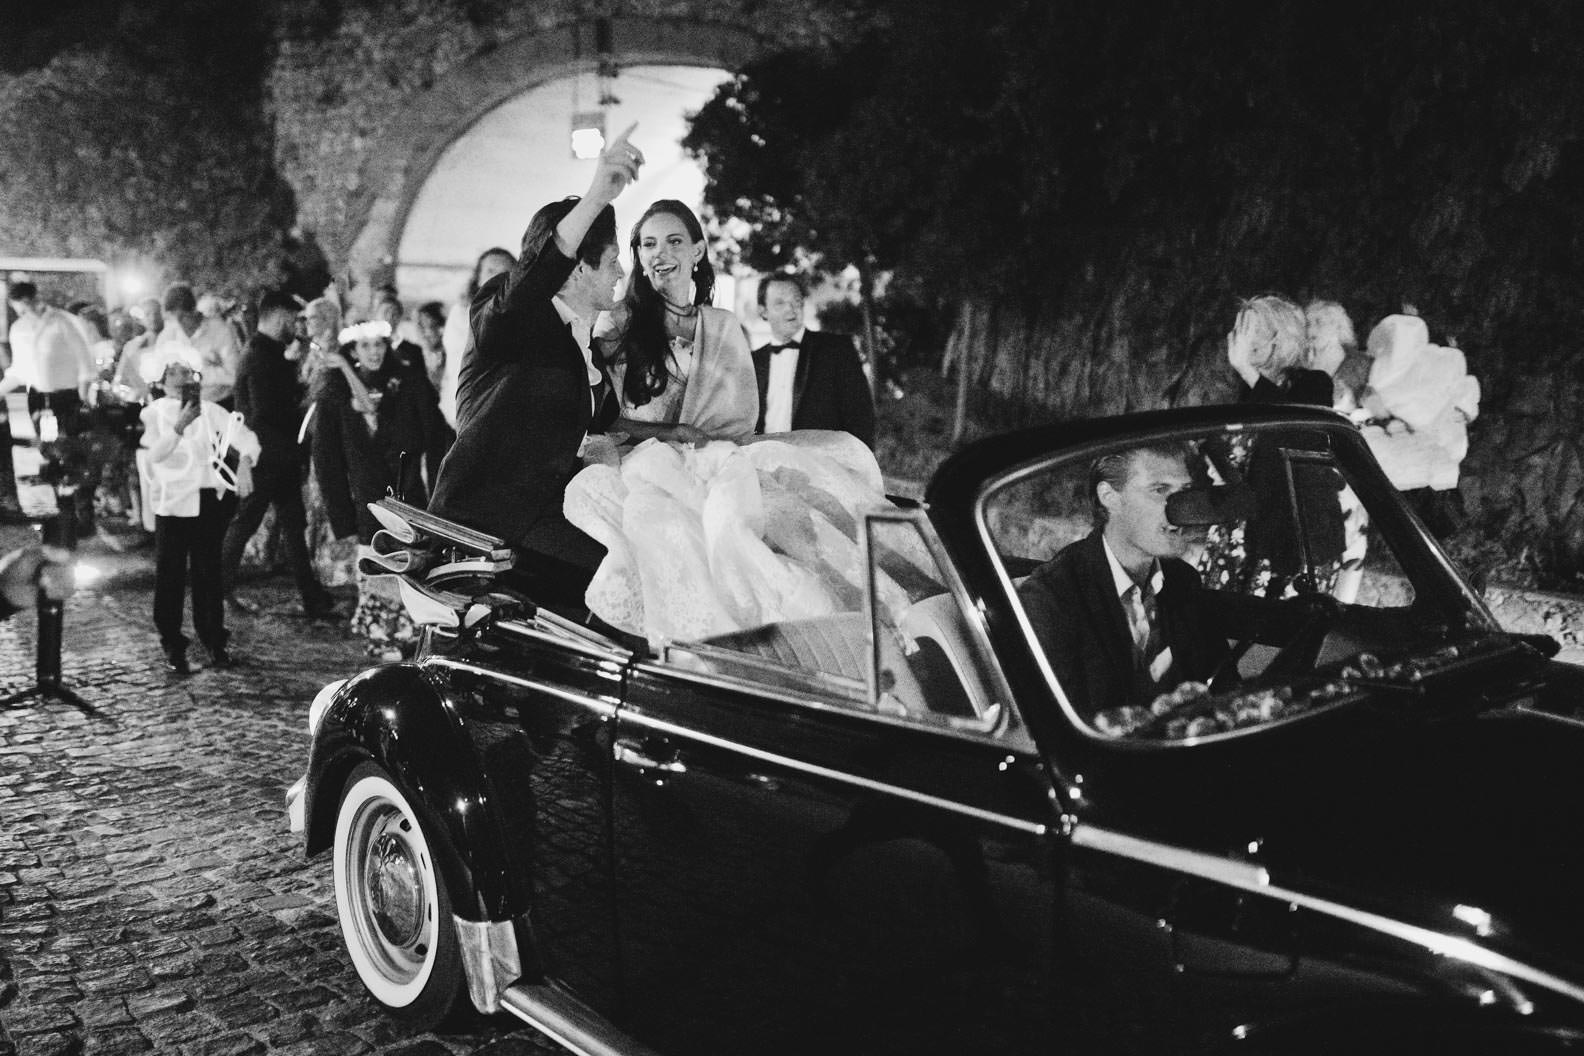 bride and groom leaving the reception with a vintage convertible car